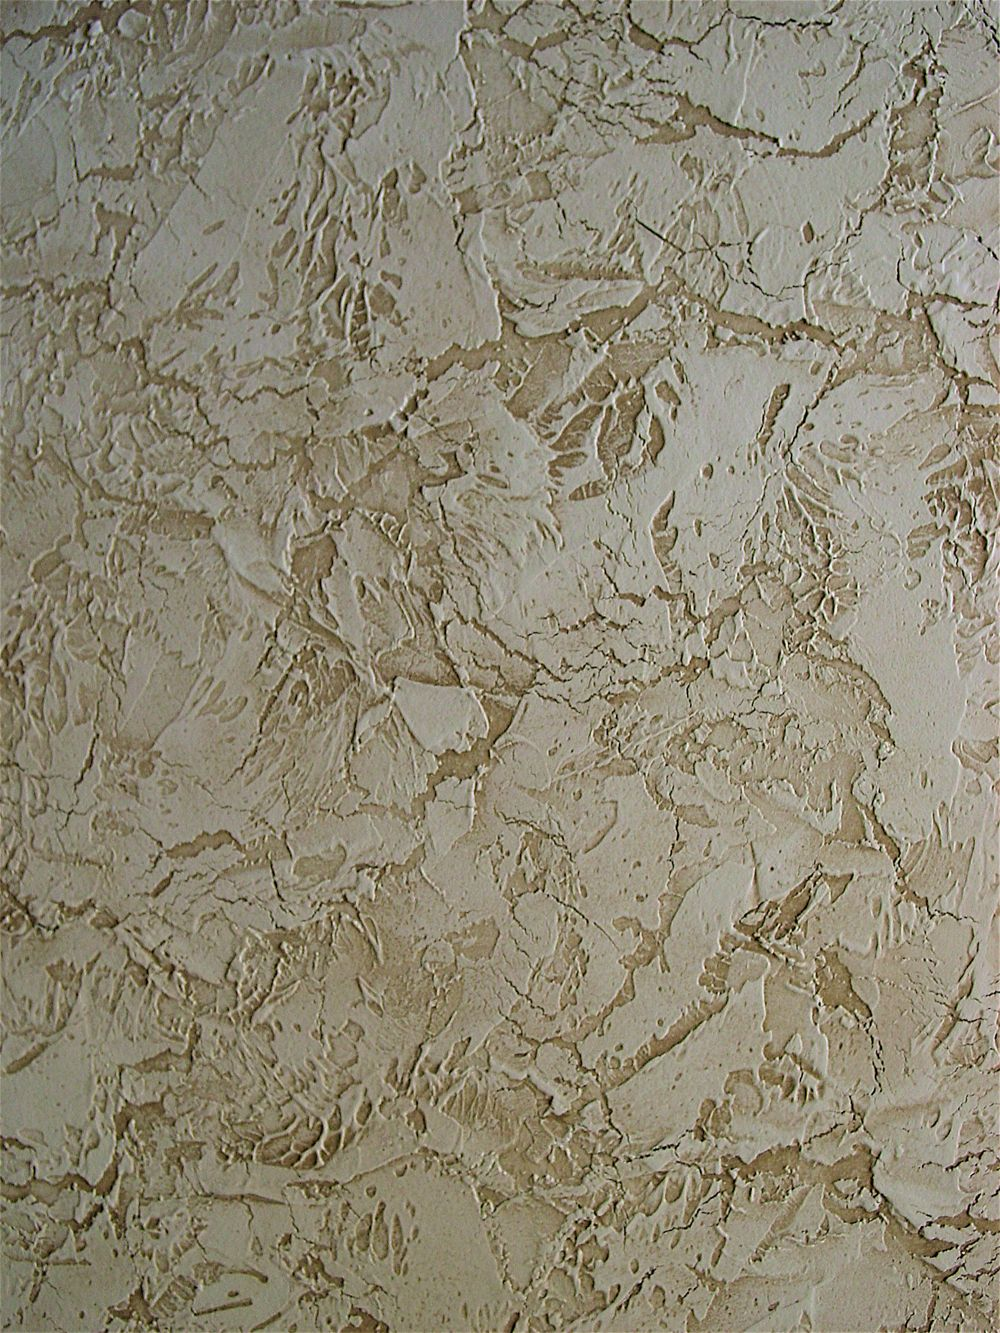 Wall textures techniques wall texture techniques http for Texture paint images